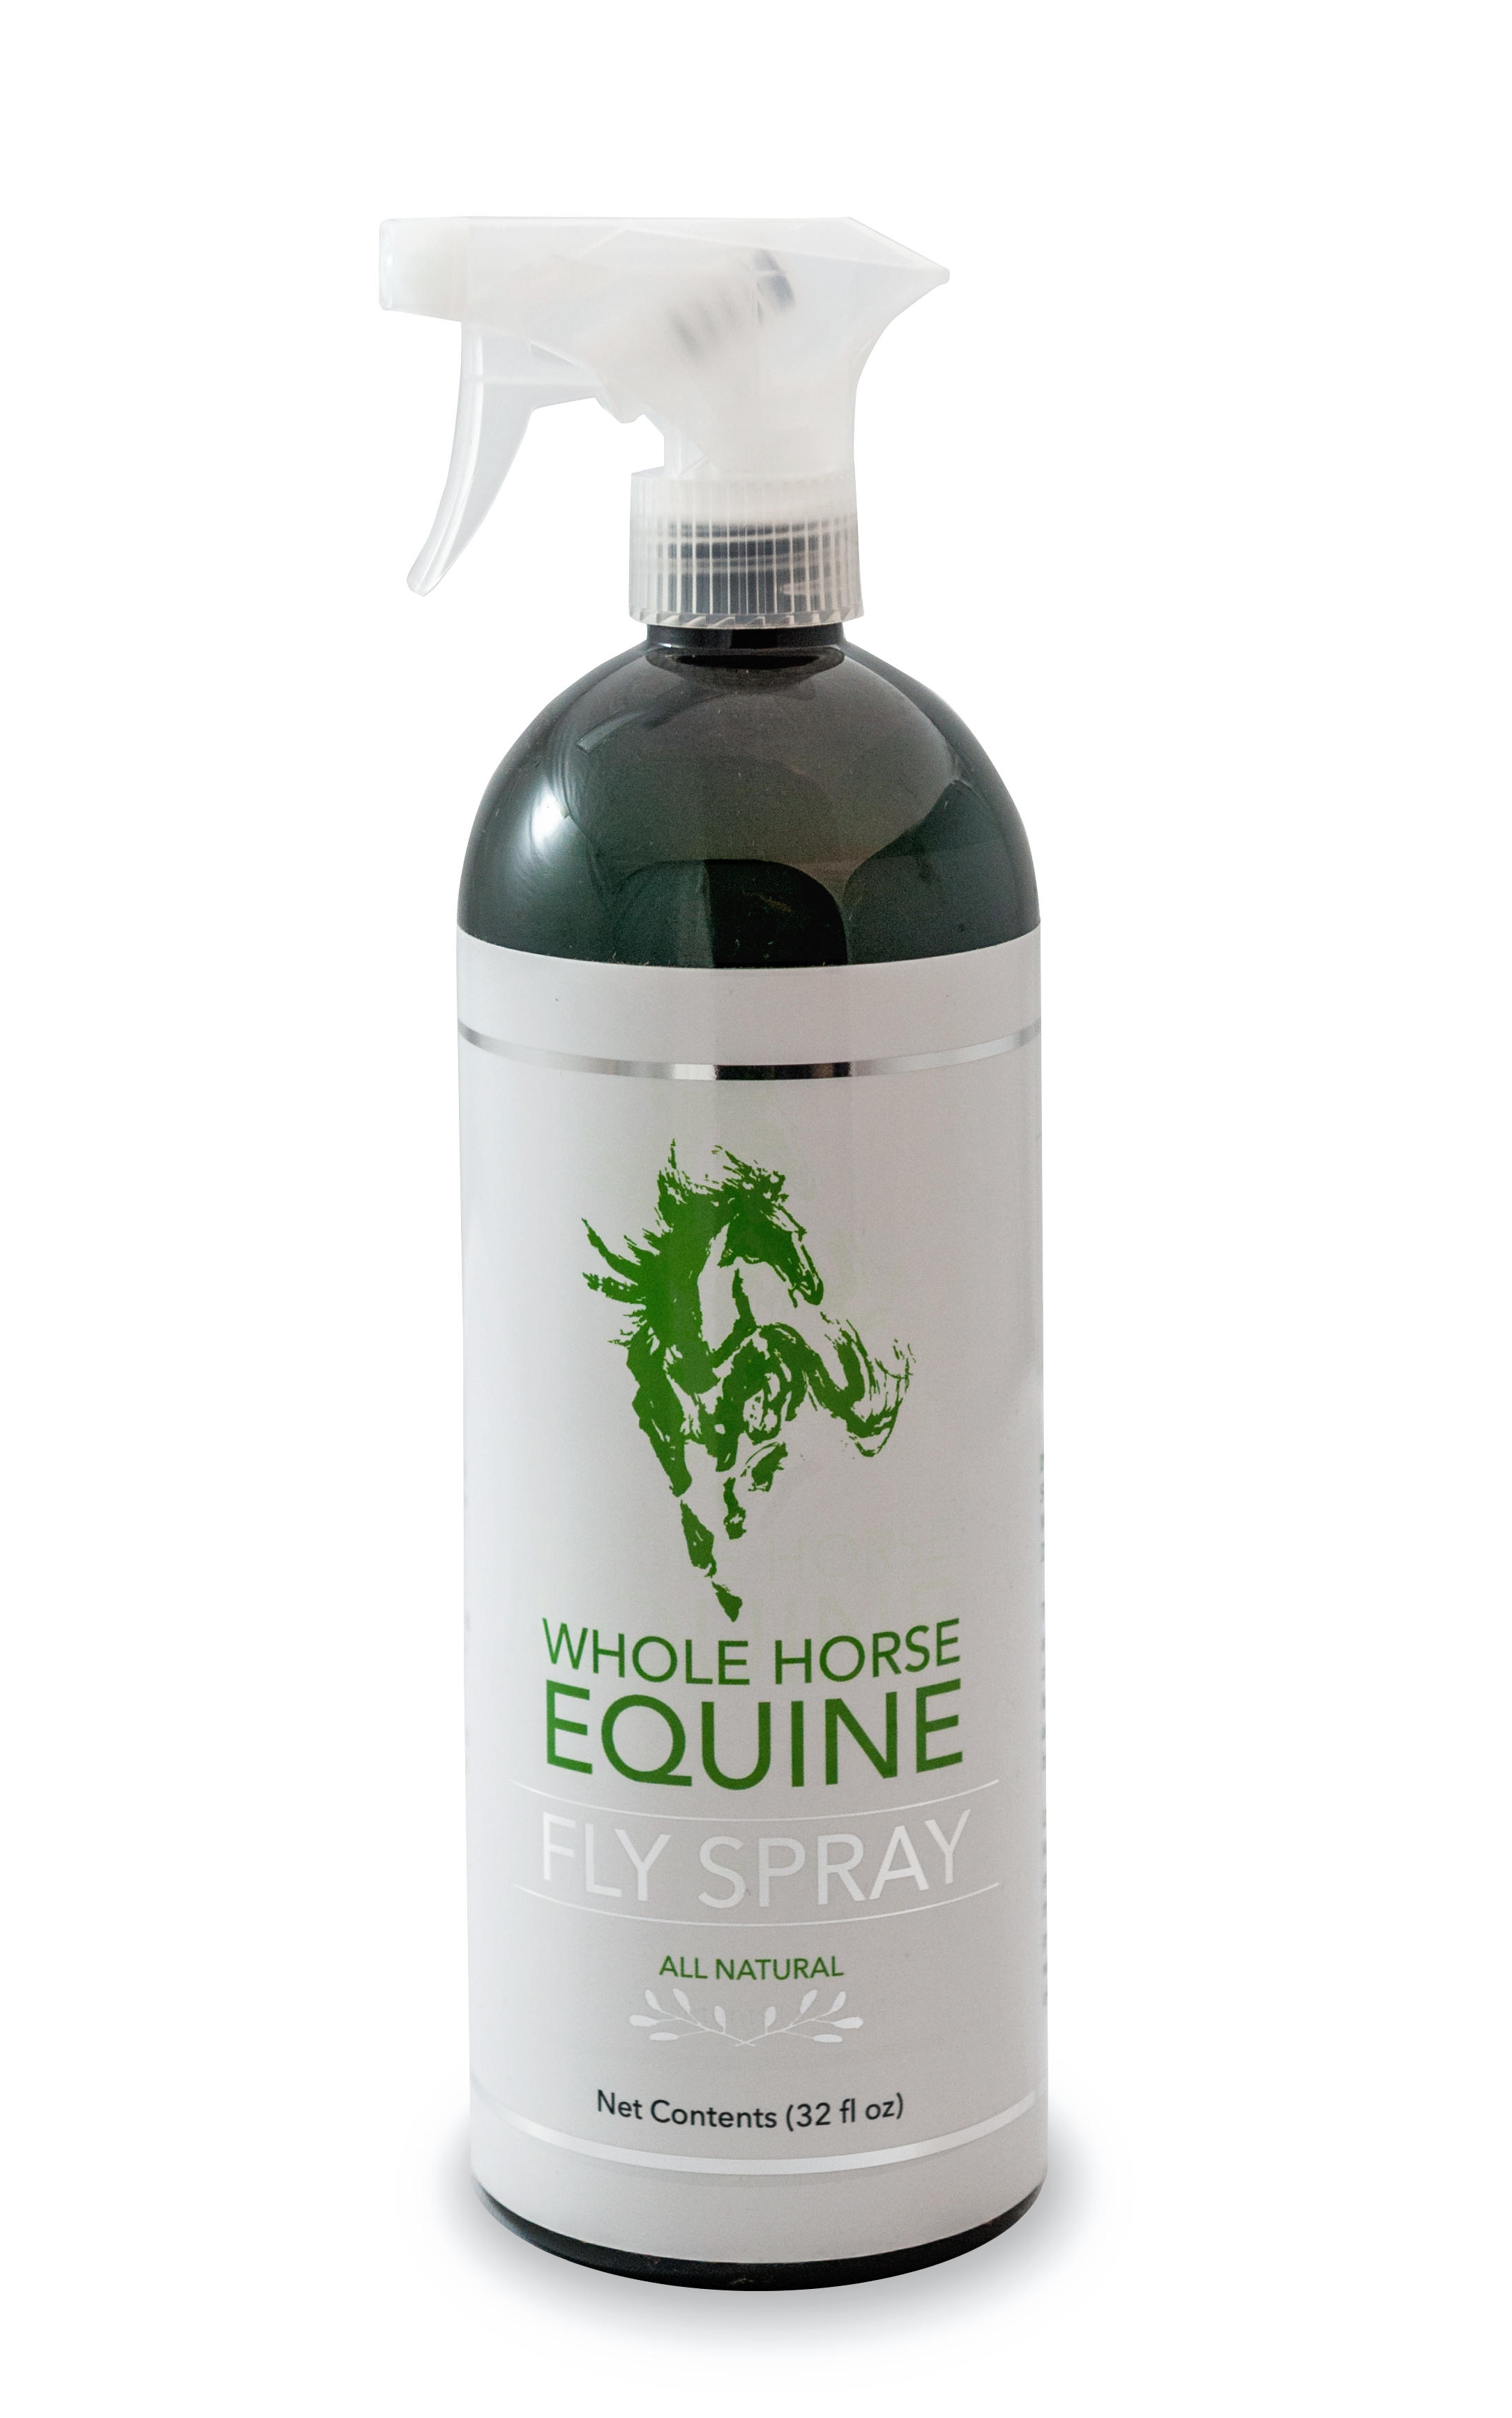 Whole Horse Equine – Plant-Derived Skincare for All Your